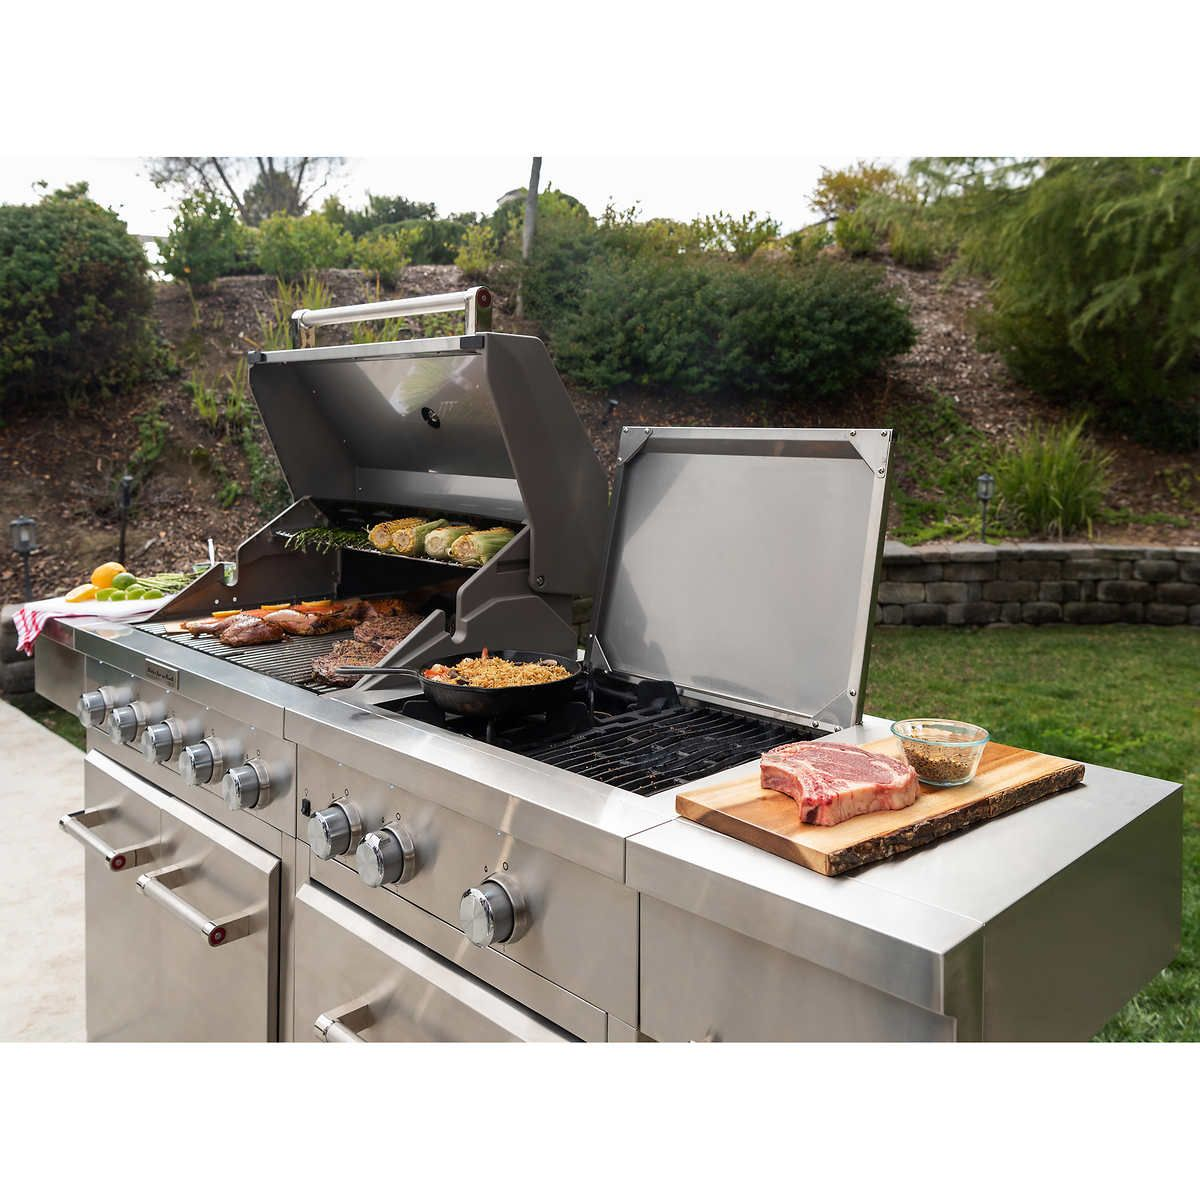 Kitchenaid Stainless Steel 8 Burner Grill In 2021 Pizza Oven Outdoor Kitchen Cooking Area Kitchen Aid